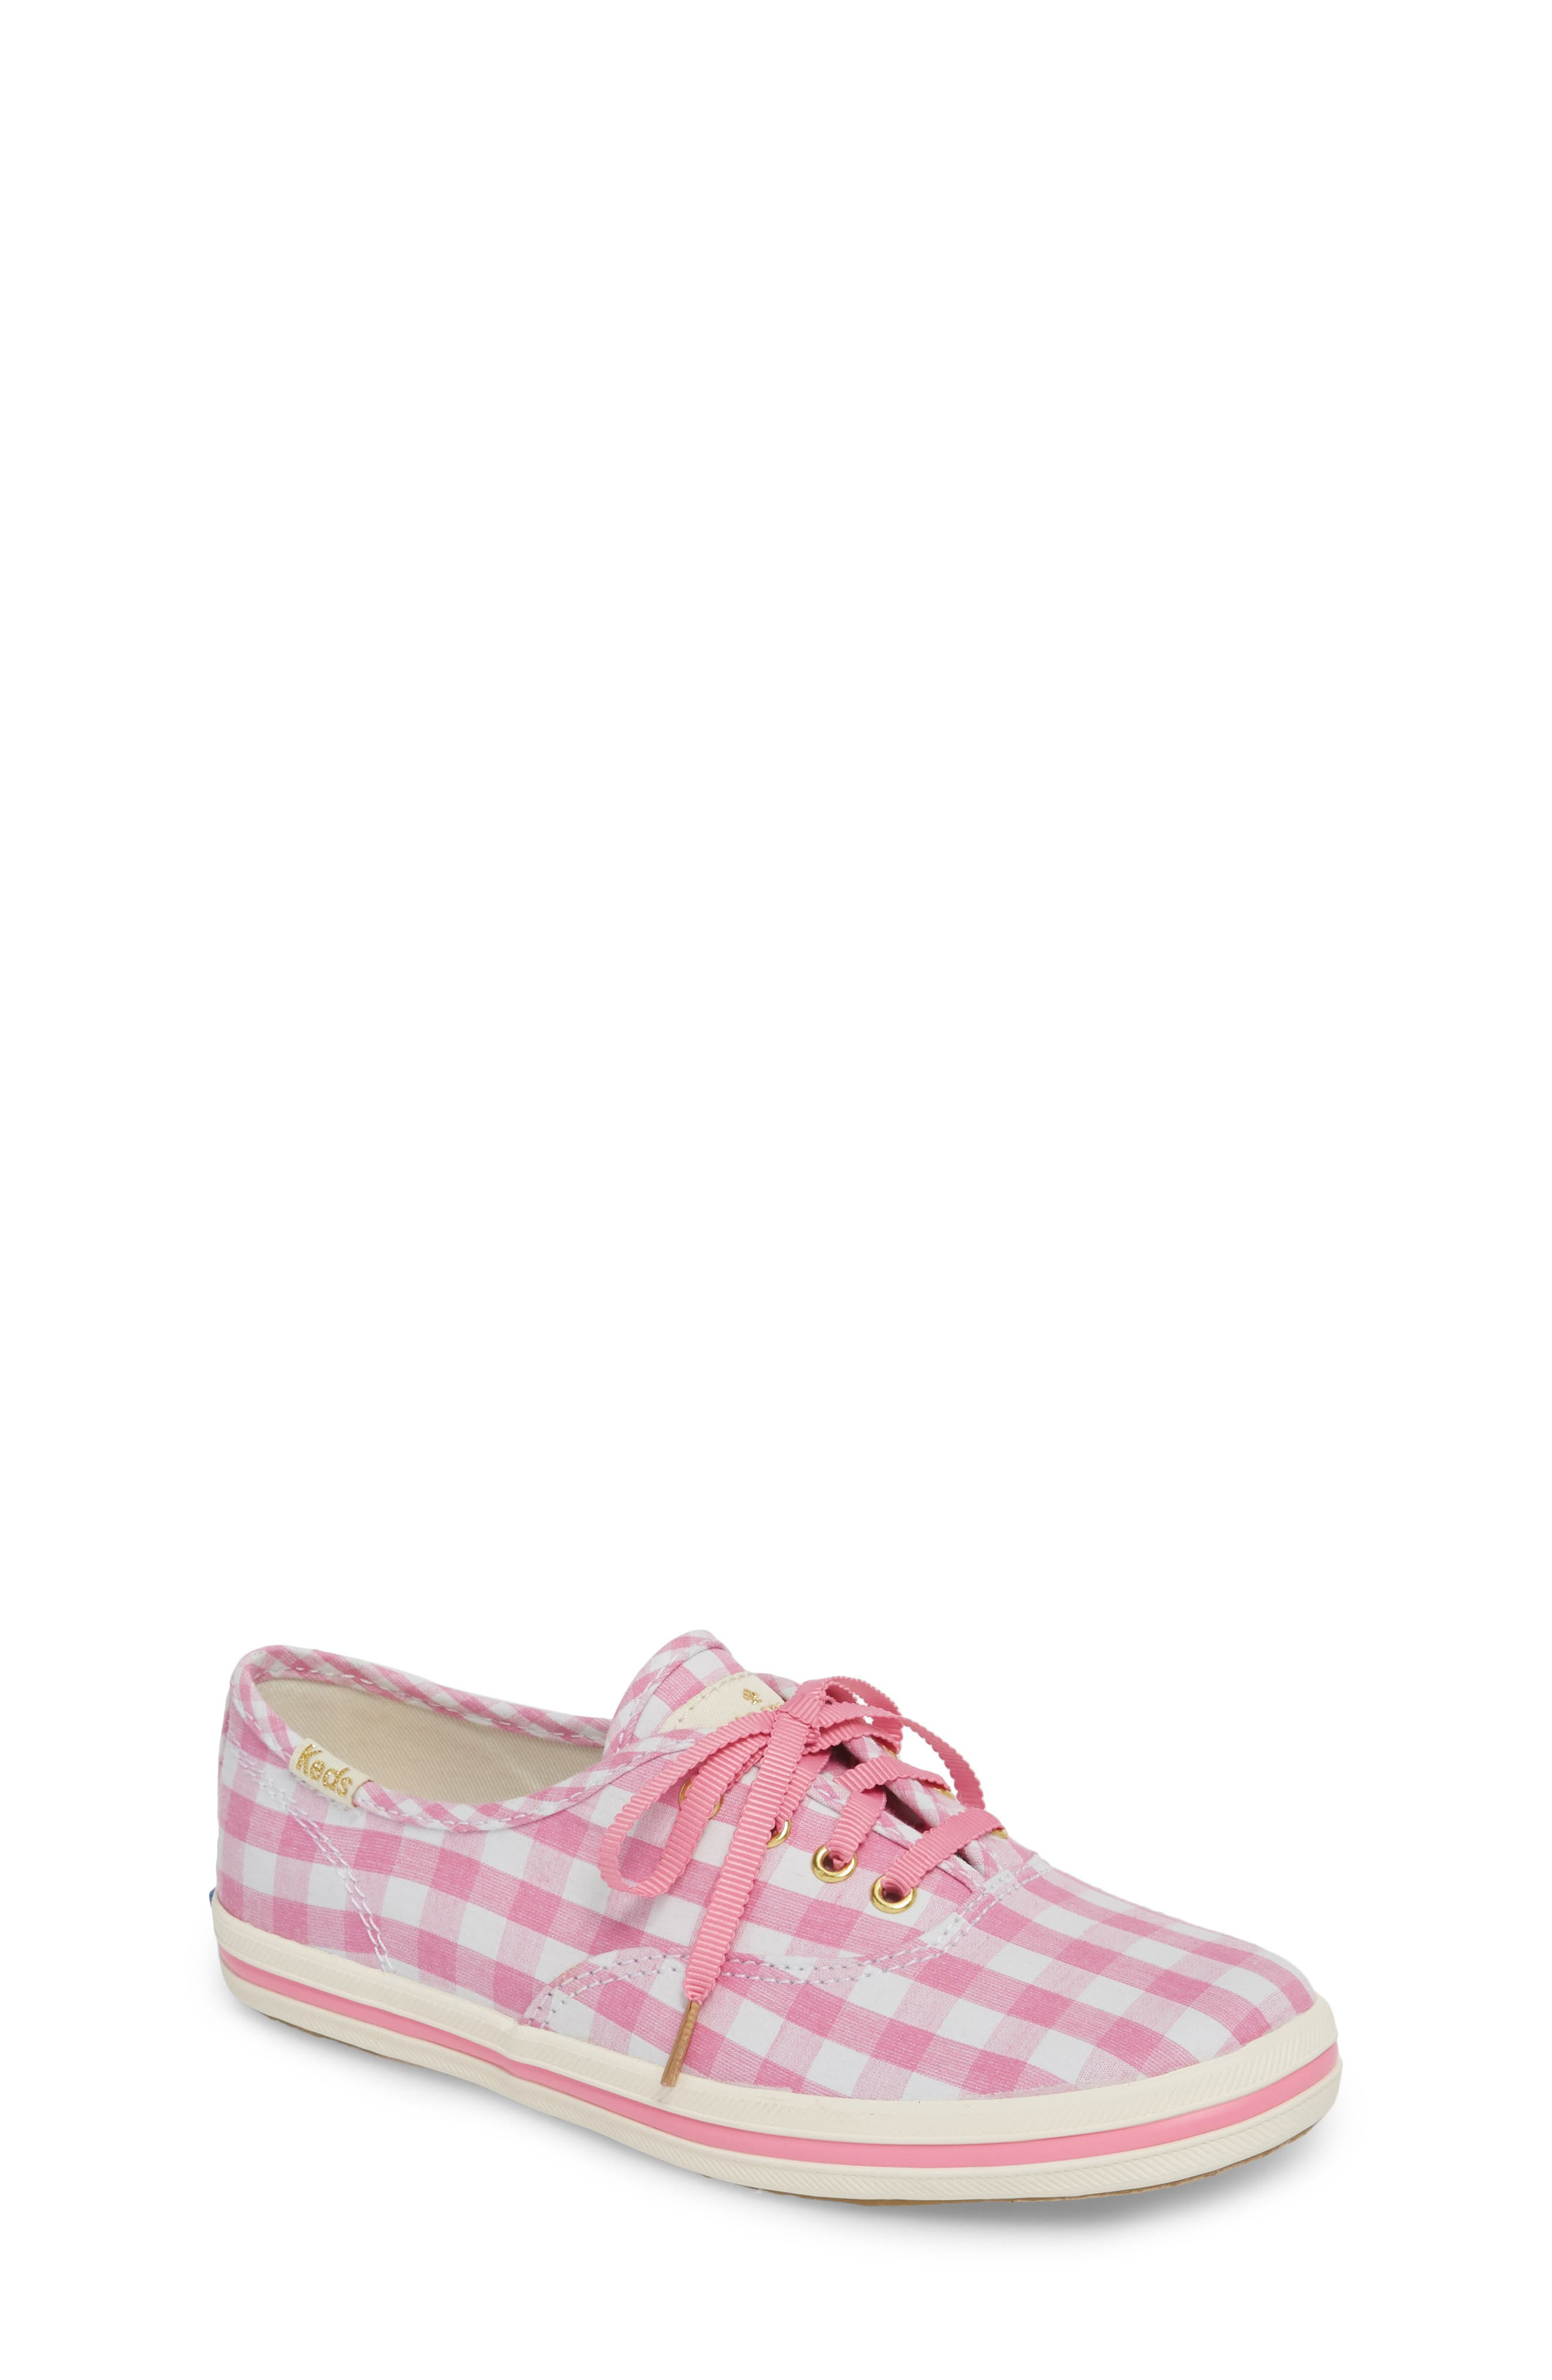 x kate spade new york champion gingham lace-up shoe,                         Main,                         color, Pink Gingham